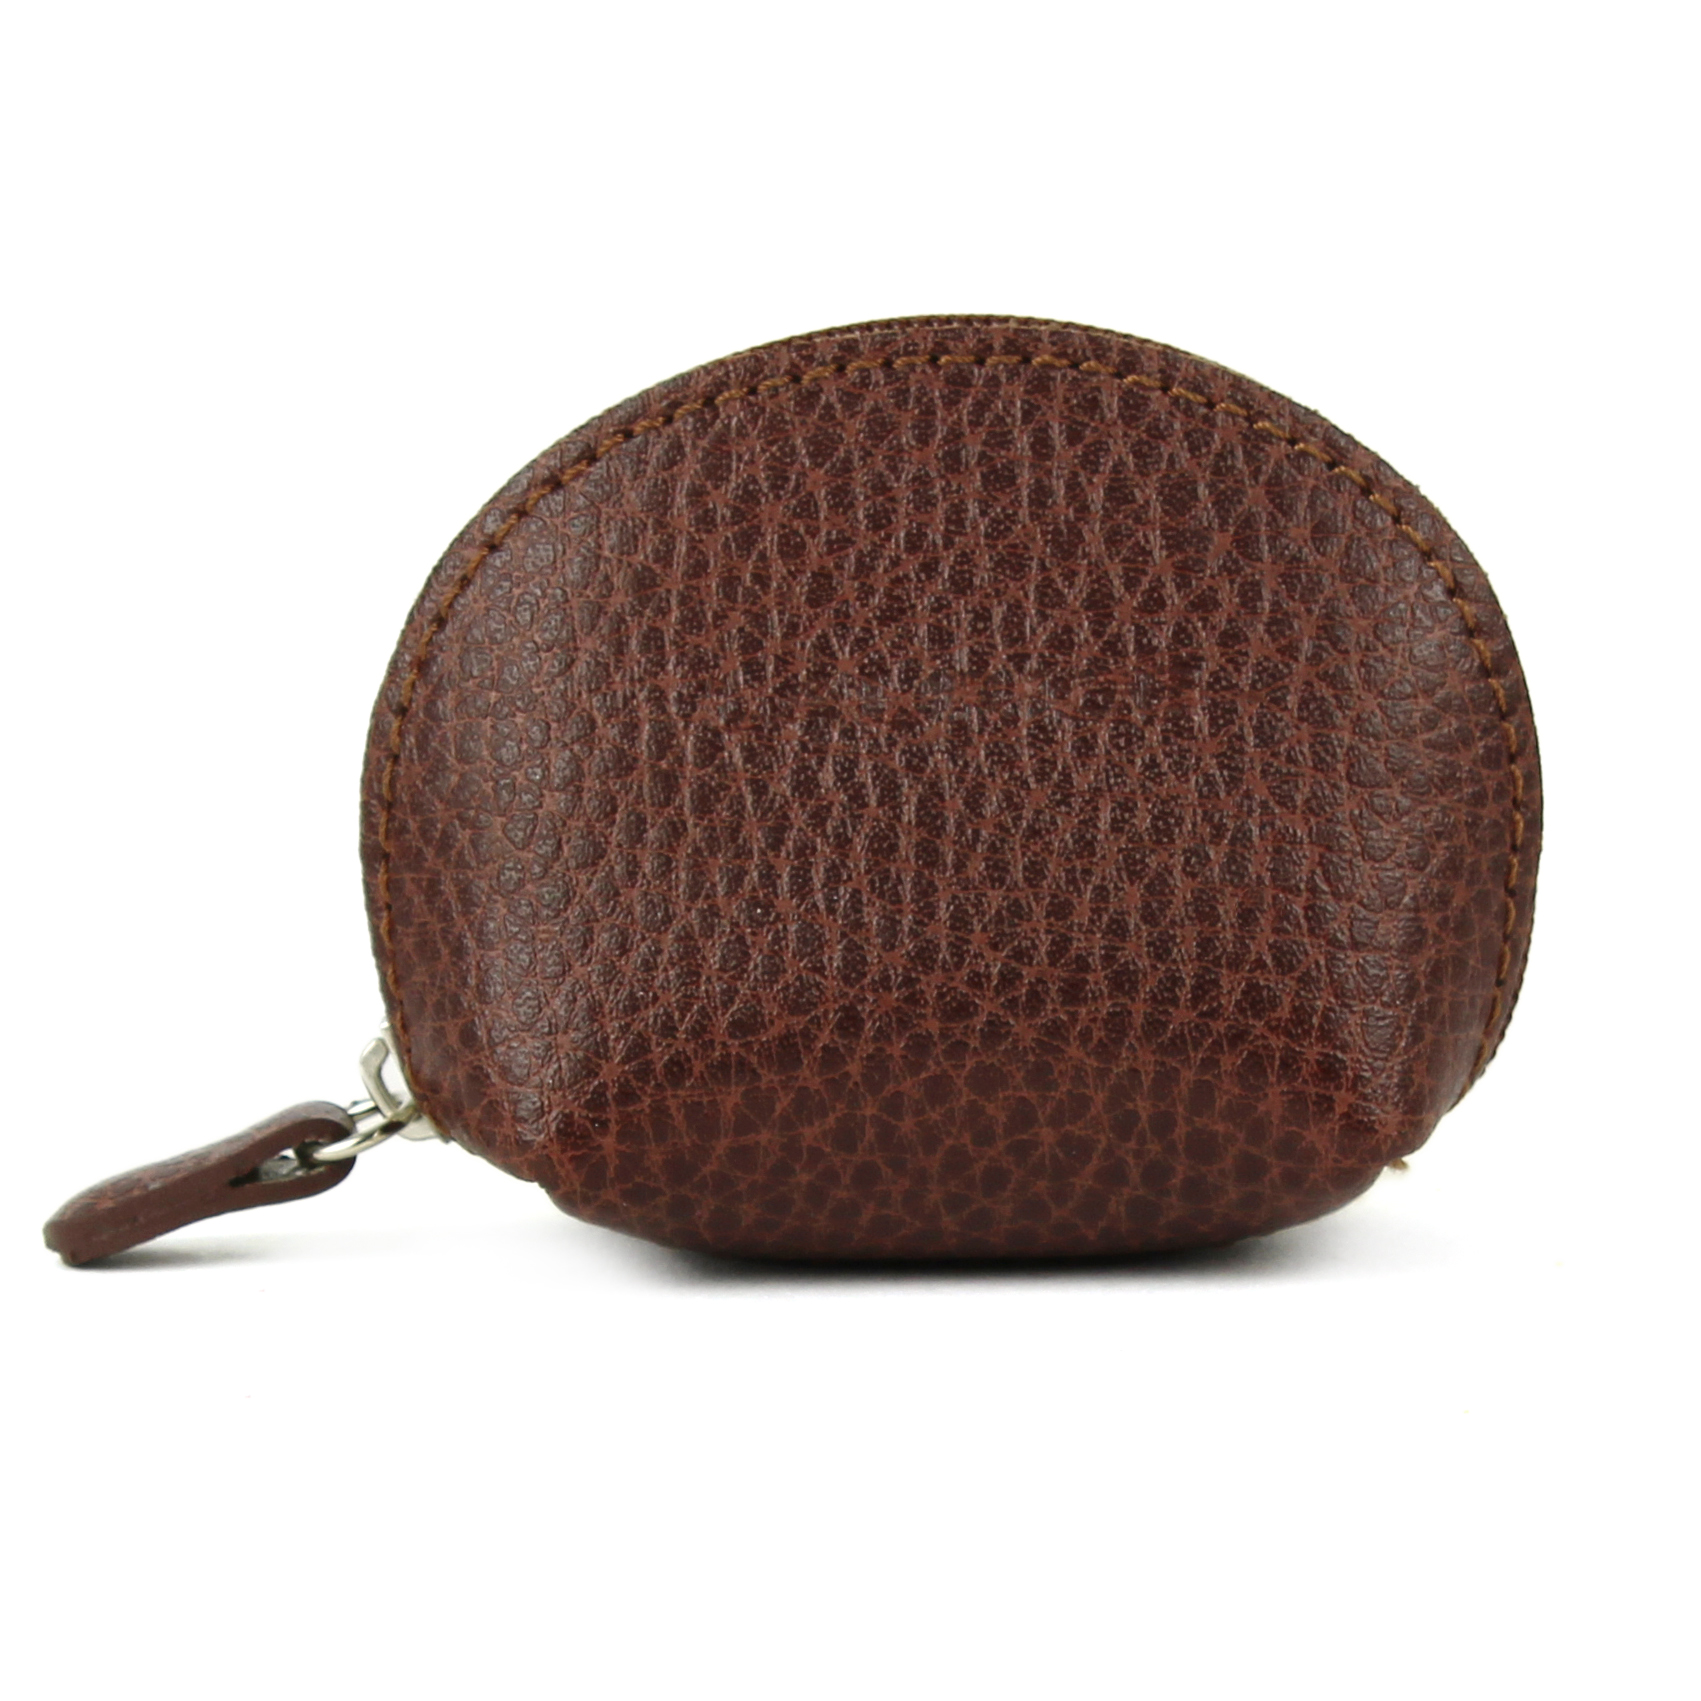 Le Meilleur Laurige Mini Leather Coin Purse • Buchan S Stationery Gifts Ce Mois Ci